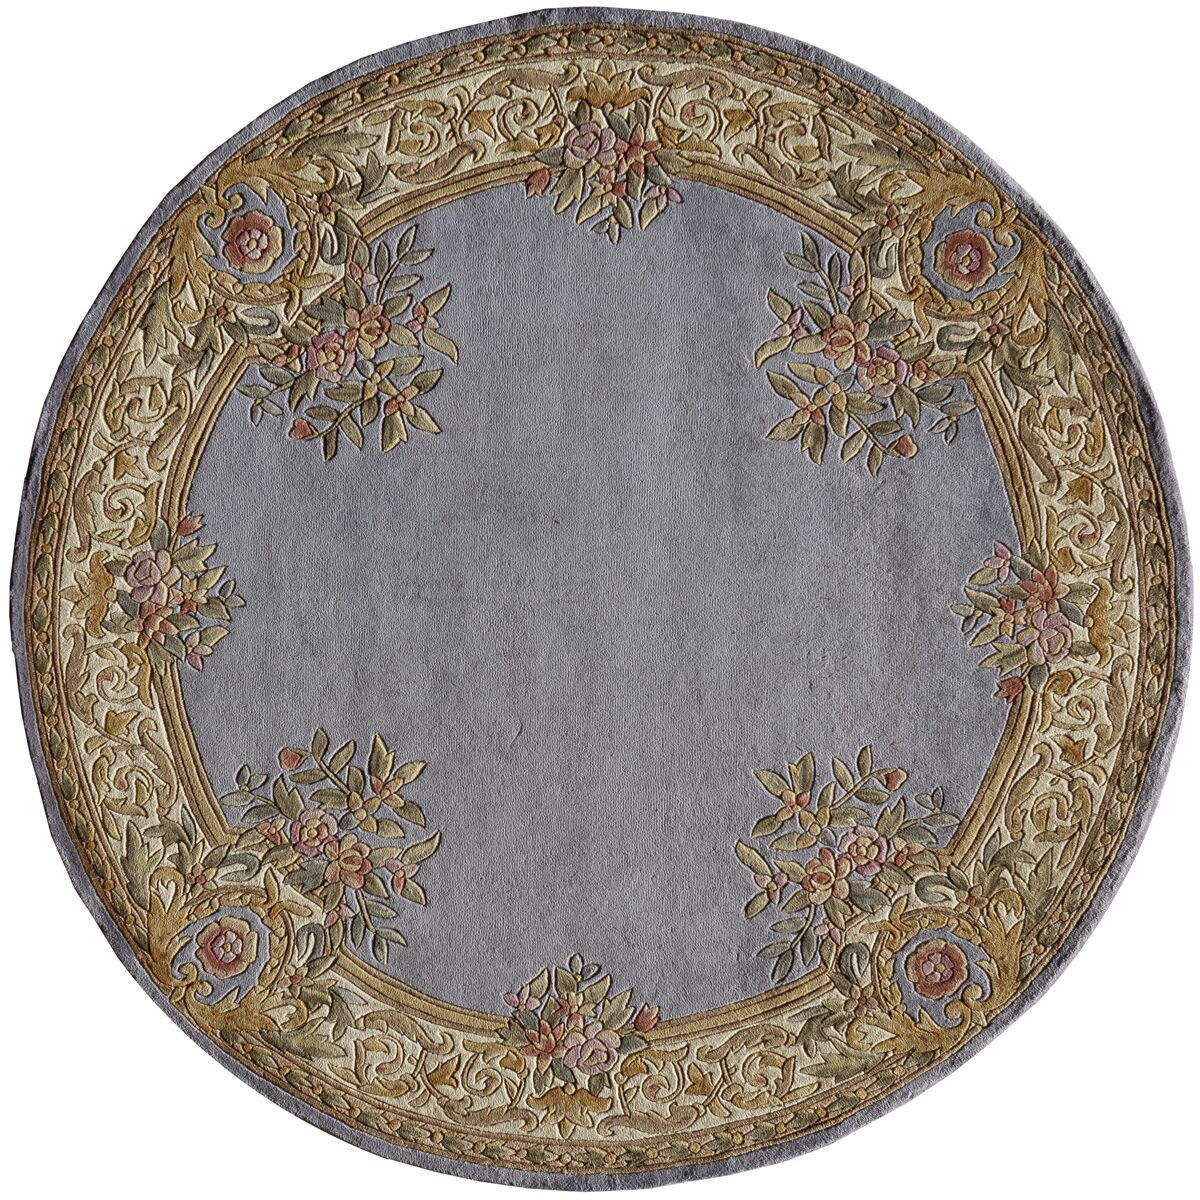 Laurel Hand-Woven Blue Area Rug Rug Size: Round 7'9